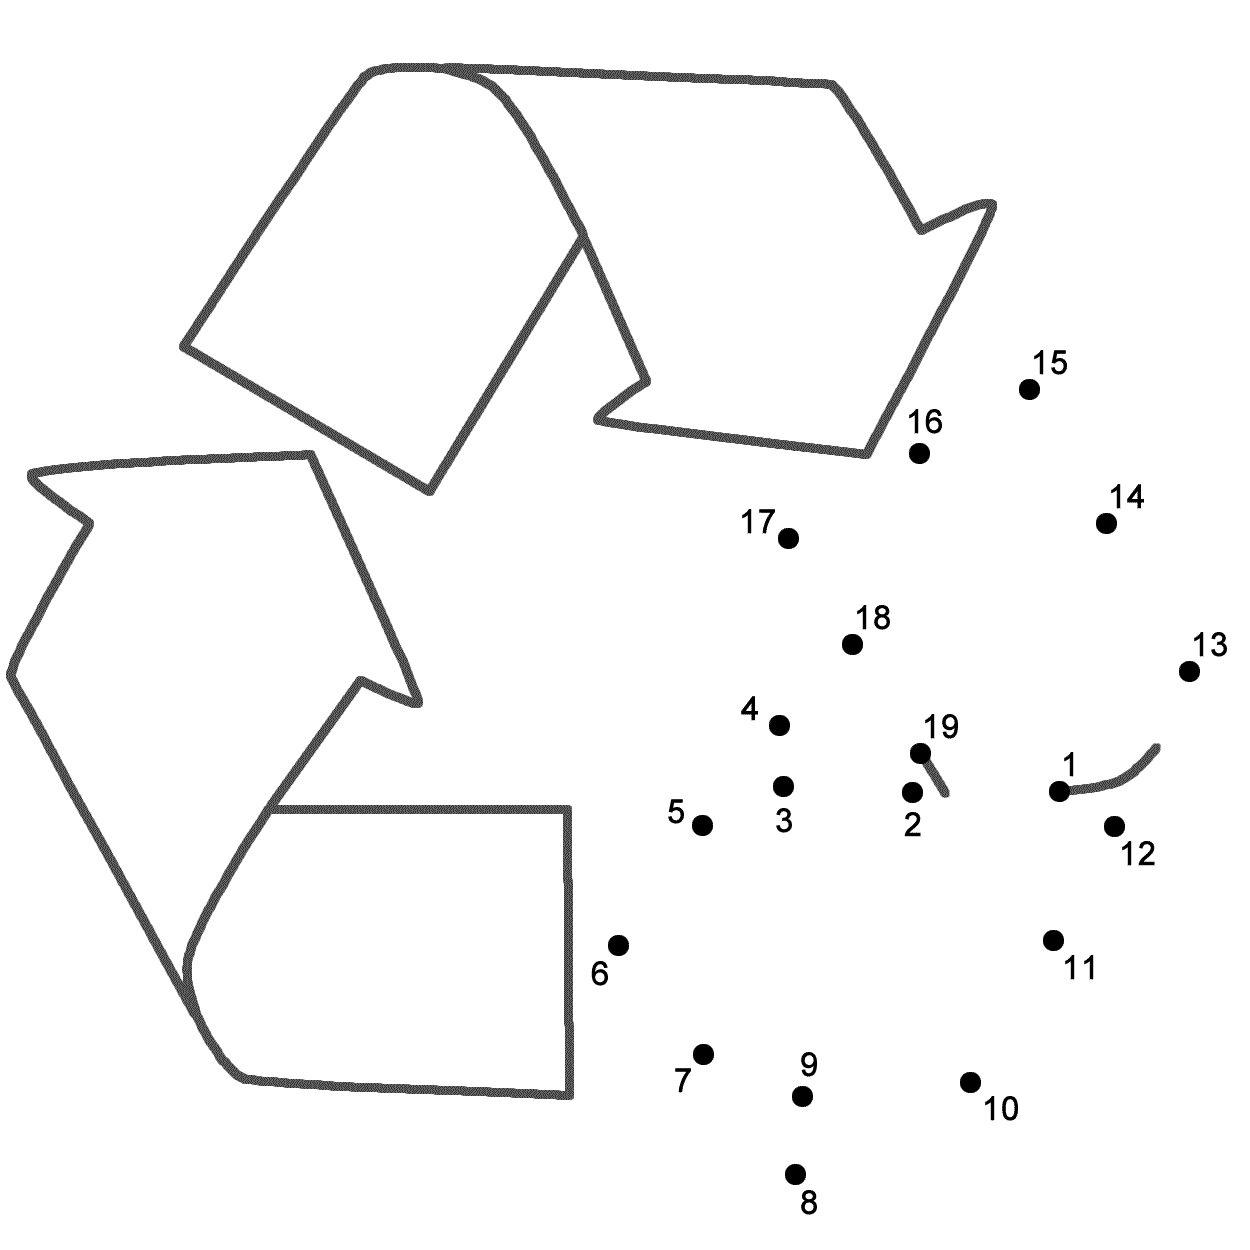 Colouring pages recycling - This Recycle Connect The Dots Page Features A Dot To Dot Puzzle For Earth Day This Activity Worksheet Helps Kids Practice Connecting The Dots